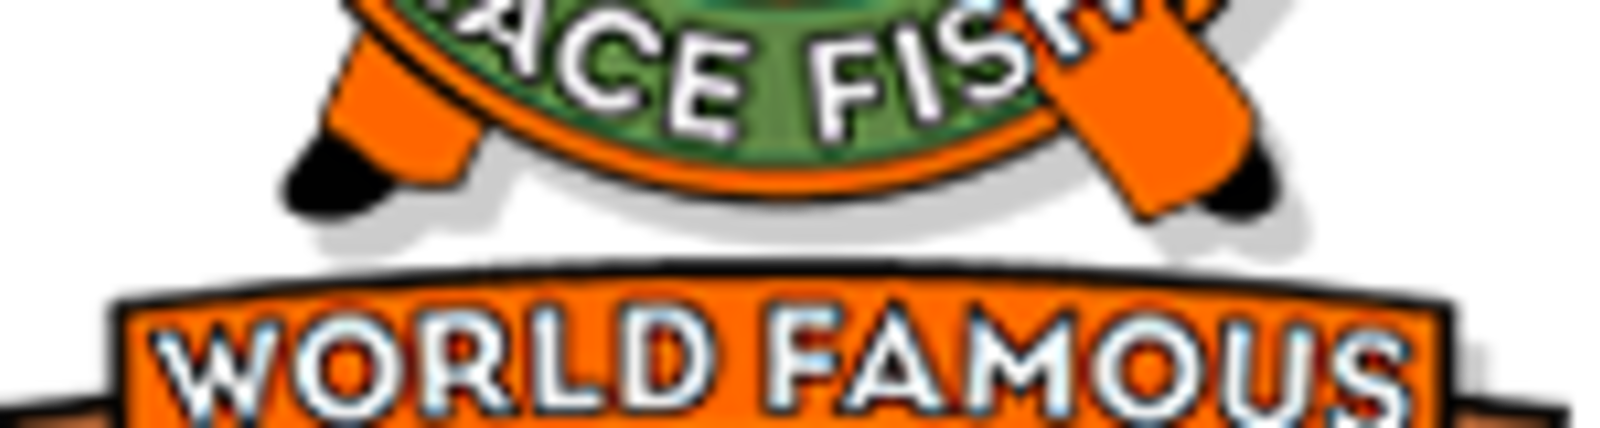 Pike_Place_Fish_Market-2.png